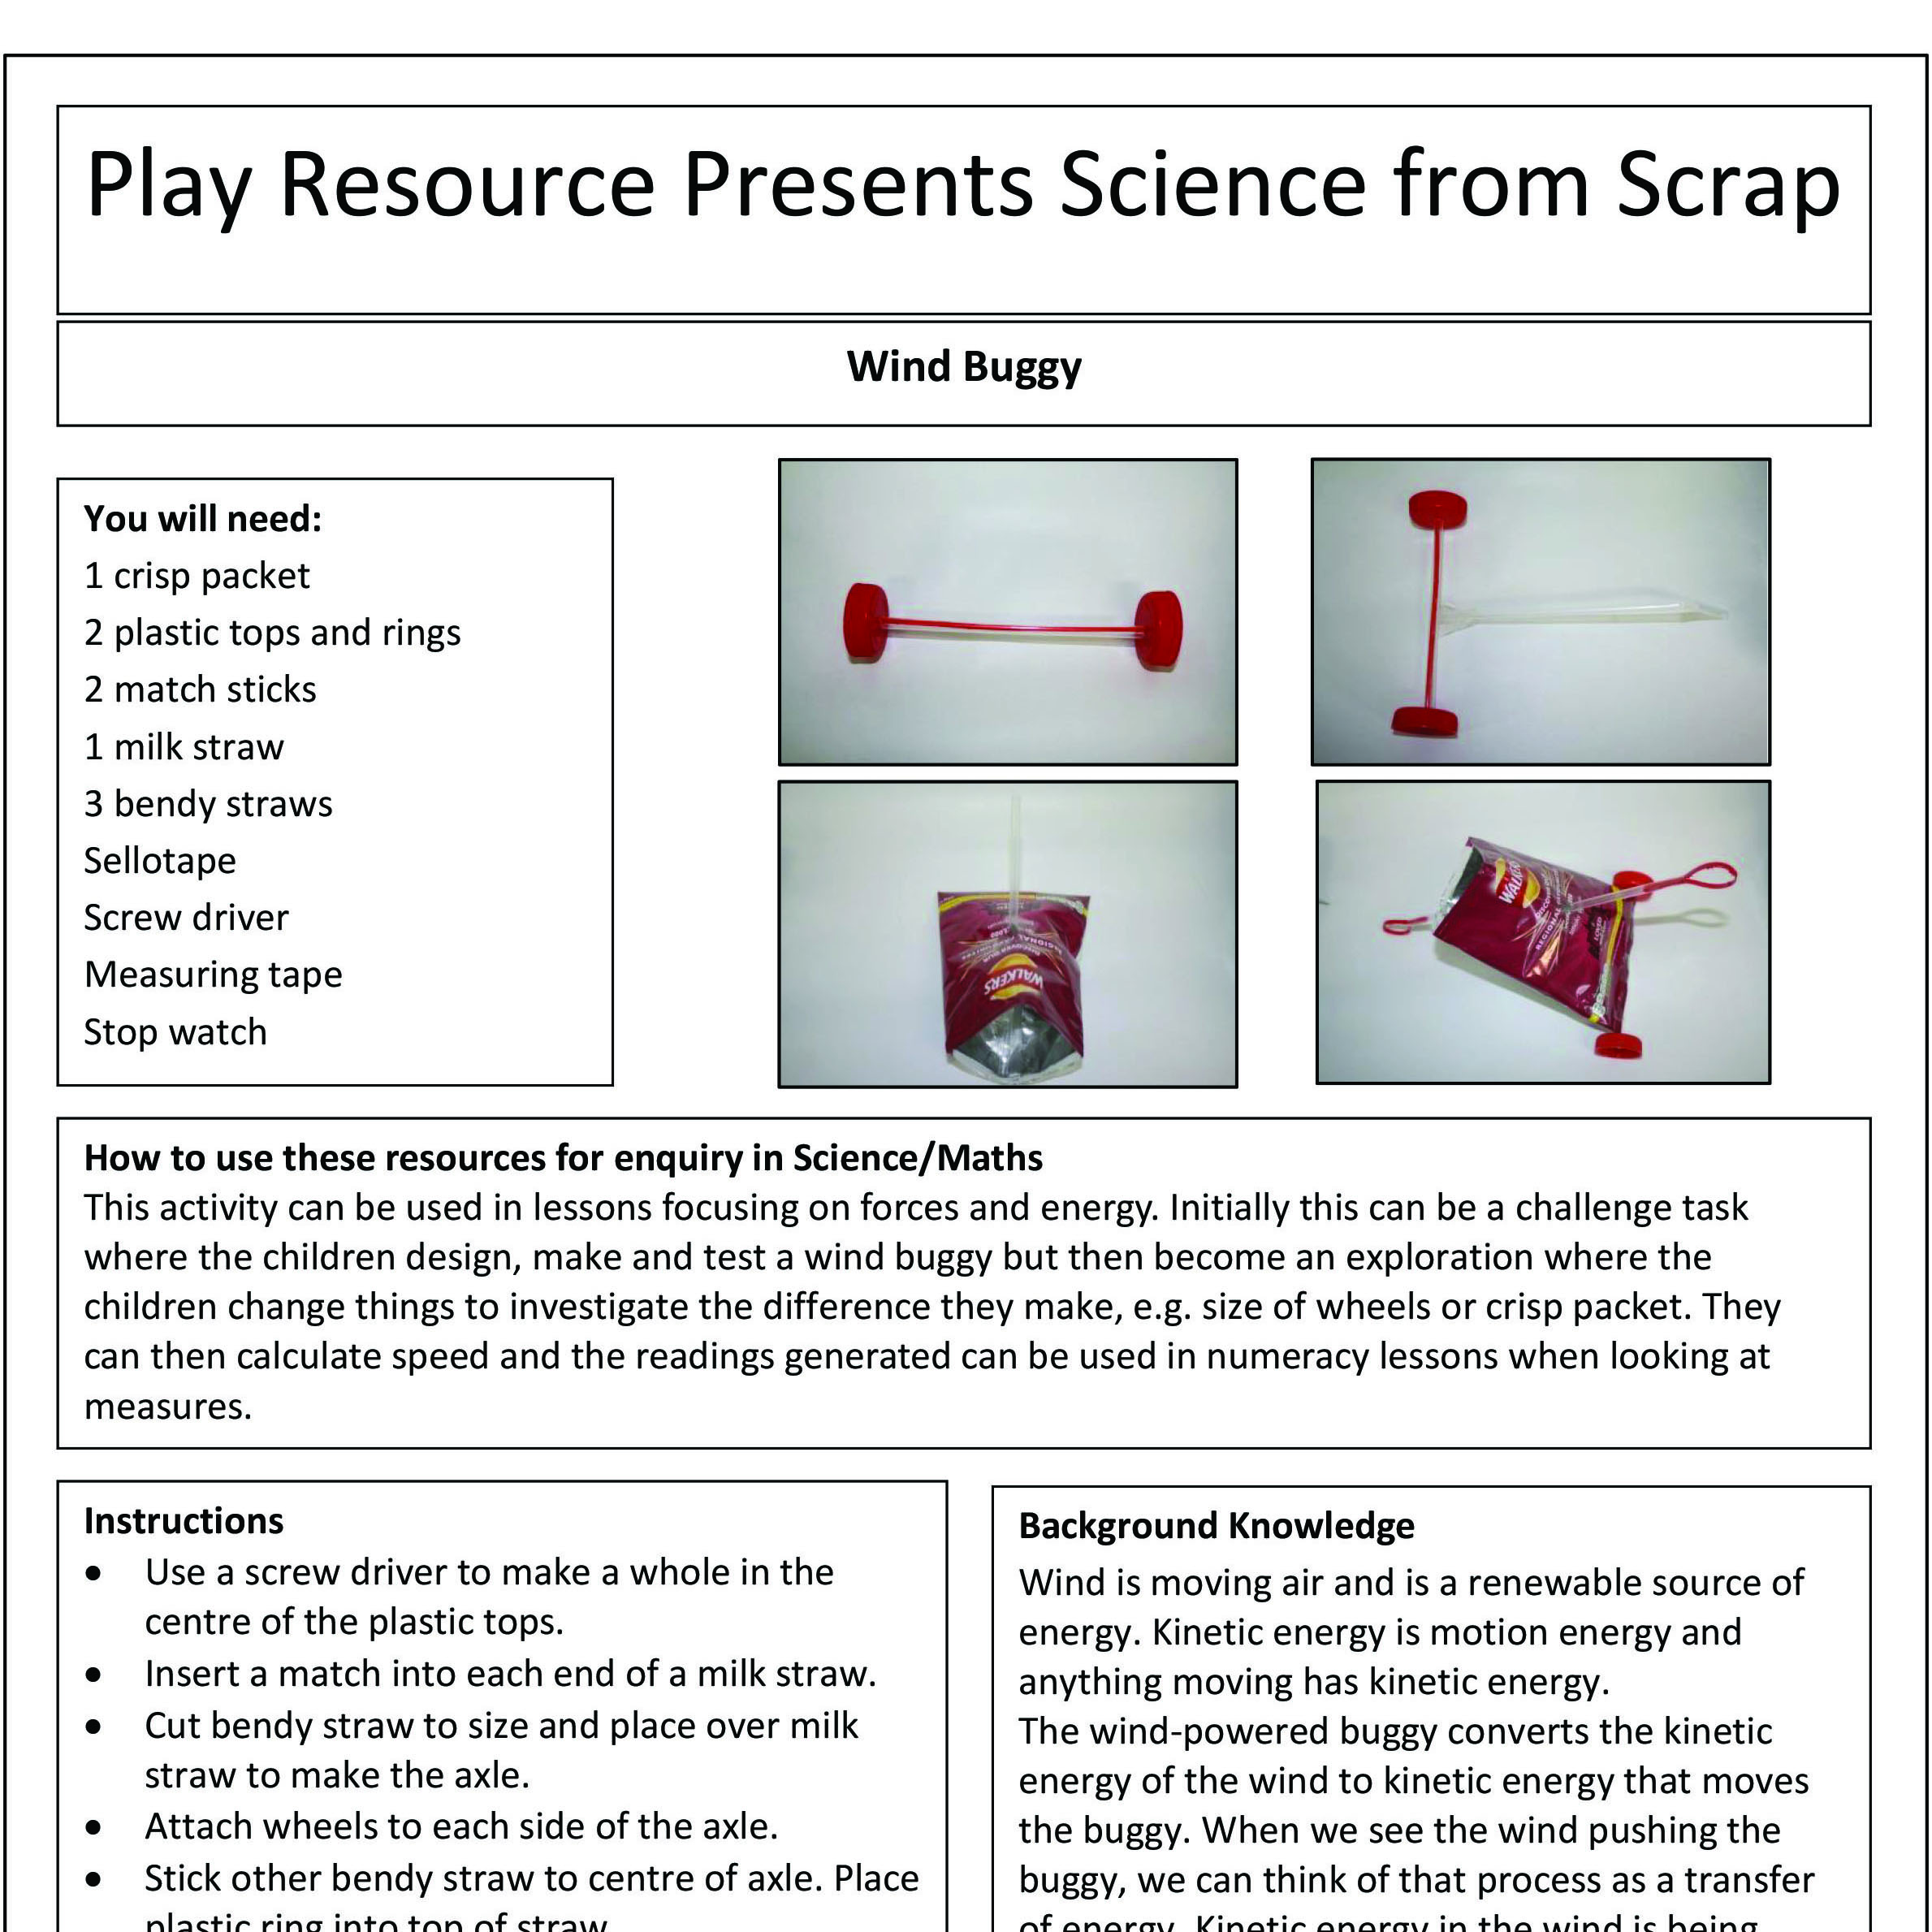 Wind Buggy – Play Resource Presents Science from Scrap